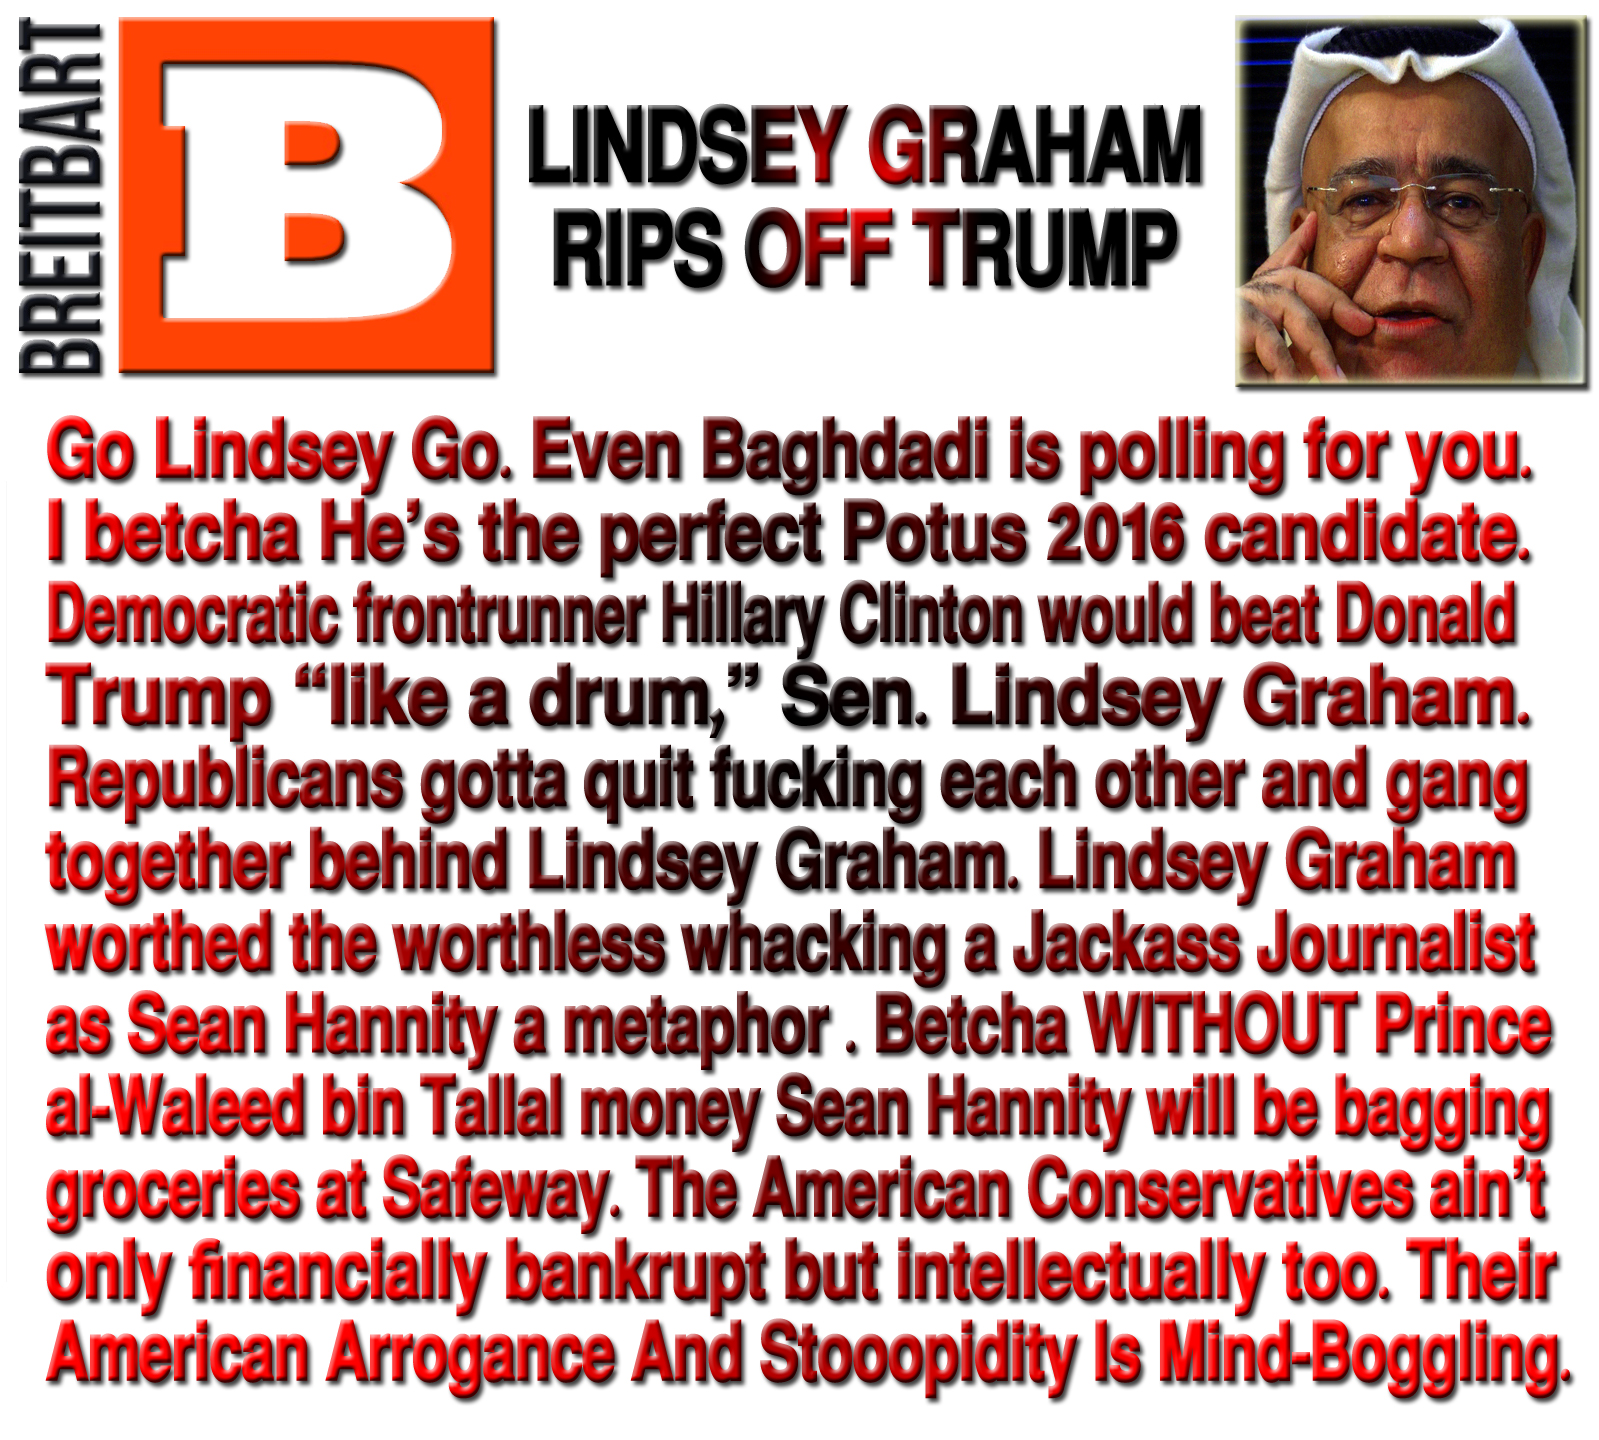 """LINDSEY GRAHAM RIPS OFF TRUMP. Go Lindsey Go. Even Baghdadi is polling for you. I betcha He's the perfect Potus 2016 candidate. Democratic frontrunner Hillary Clinton would beat Donald Trump """"like a drum,"""" Sen. Lindsey Graham Looking through GOP Finalists. Trump overwhelmingly is leading the polls. OK I know… the Diebold Election Systems (DESI) Voting Machines are RIGGED that's why? The road to the White House costs $8B minimum. Where the hell GOP Preppers will get such kinda money to get Trump elected? And what country Trump will invade to pay it back? Girls you must be kidding. Trump ain't but a kingmaker. Now that he knows; he's going nowhere but to bid Obama 3rd term. Republicans gotta quit fucking each other and gang together behind Lindsey Graham. Lindsey Graham worthed the worthless whacking a Jackass Journalist as Sean Hannity a metaphor in H.W. Brands' Franklin Biography who wrote 'The First American: The Life and Times of Benjamin Franklin' during his conversation with Chuck Todd. Betcha WITHOUT Prince al-Waleed bin Tallal money Sean Hannity will be bagging groceries at Safeway. The American Conservatives ain't only financially bankrupt but intellectually too. Their American Arrogance And Stooopidity Is Mind-Boggling."""